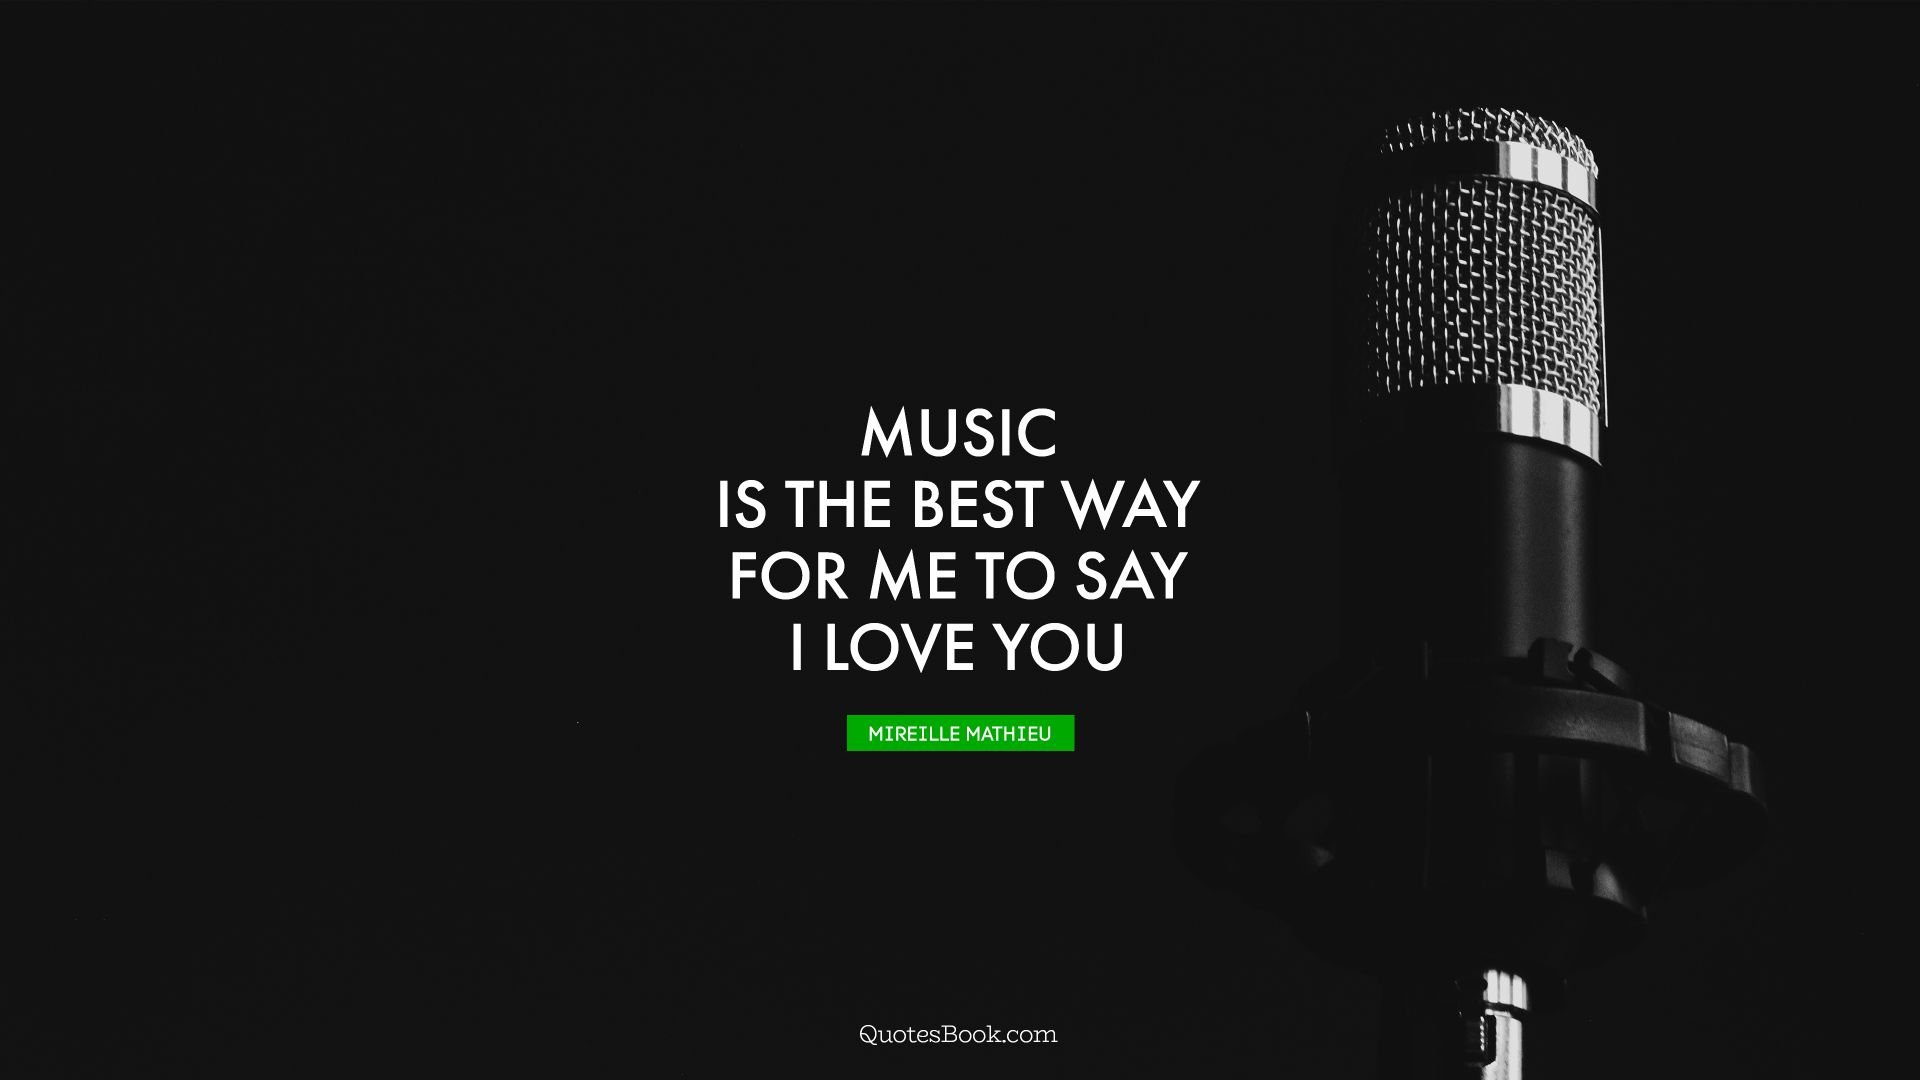 Music is the best way for me to say I love you. - Quote by Mireille Mathieu